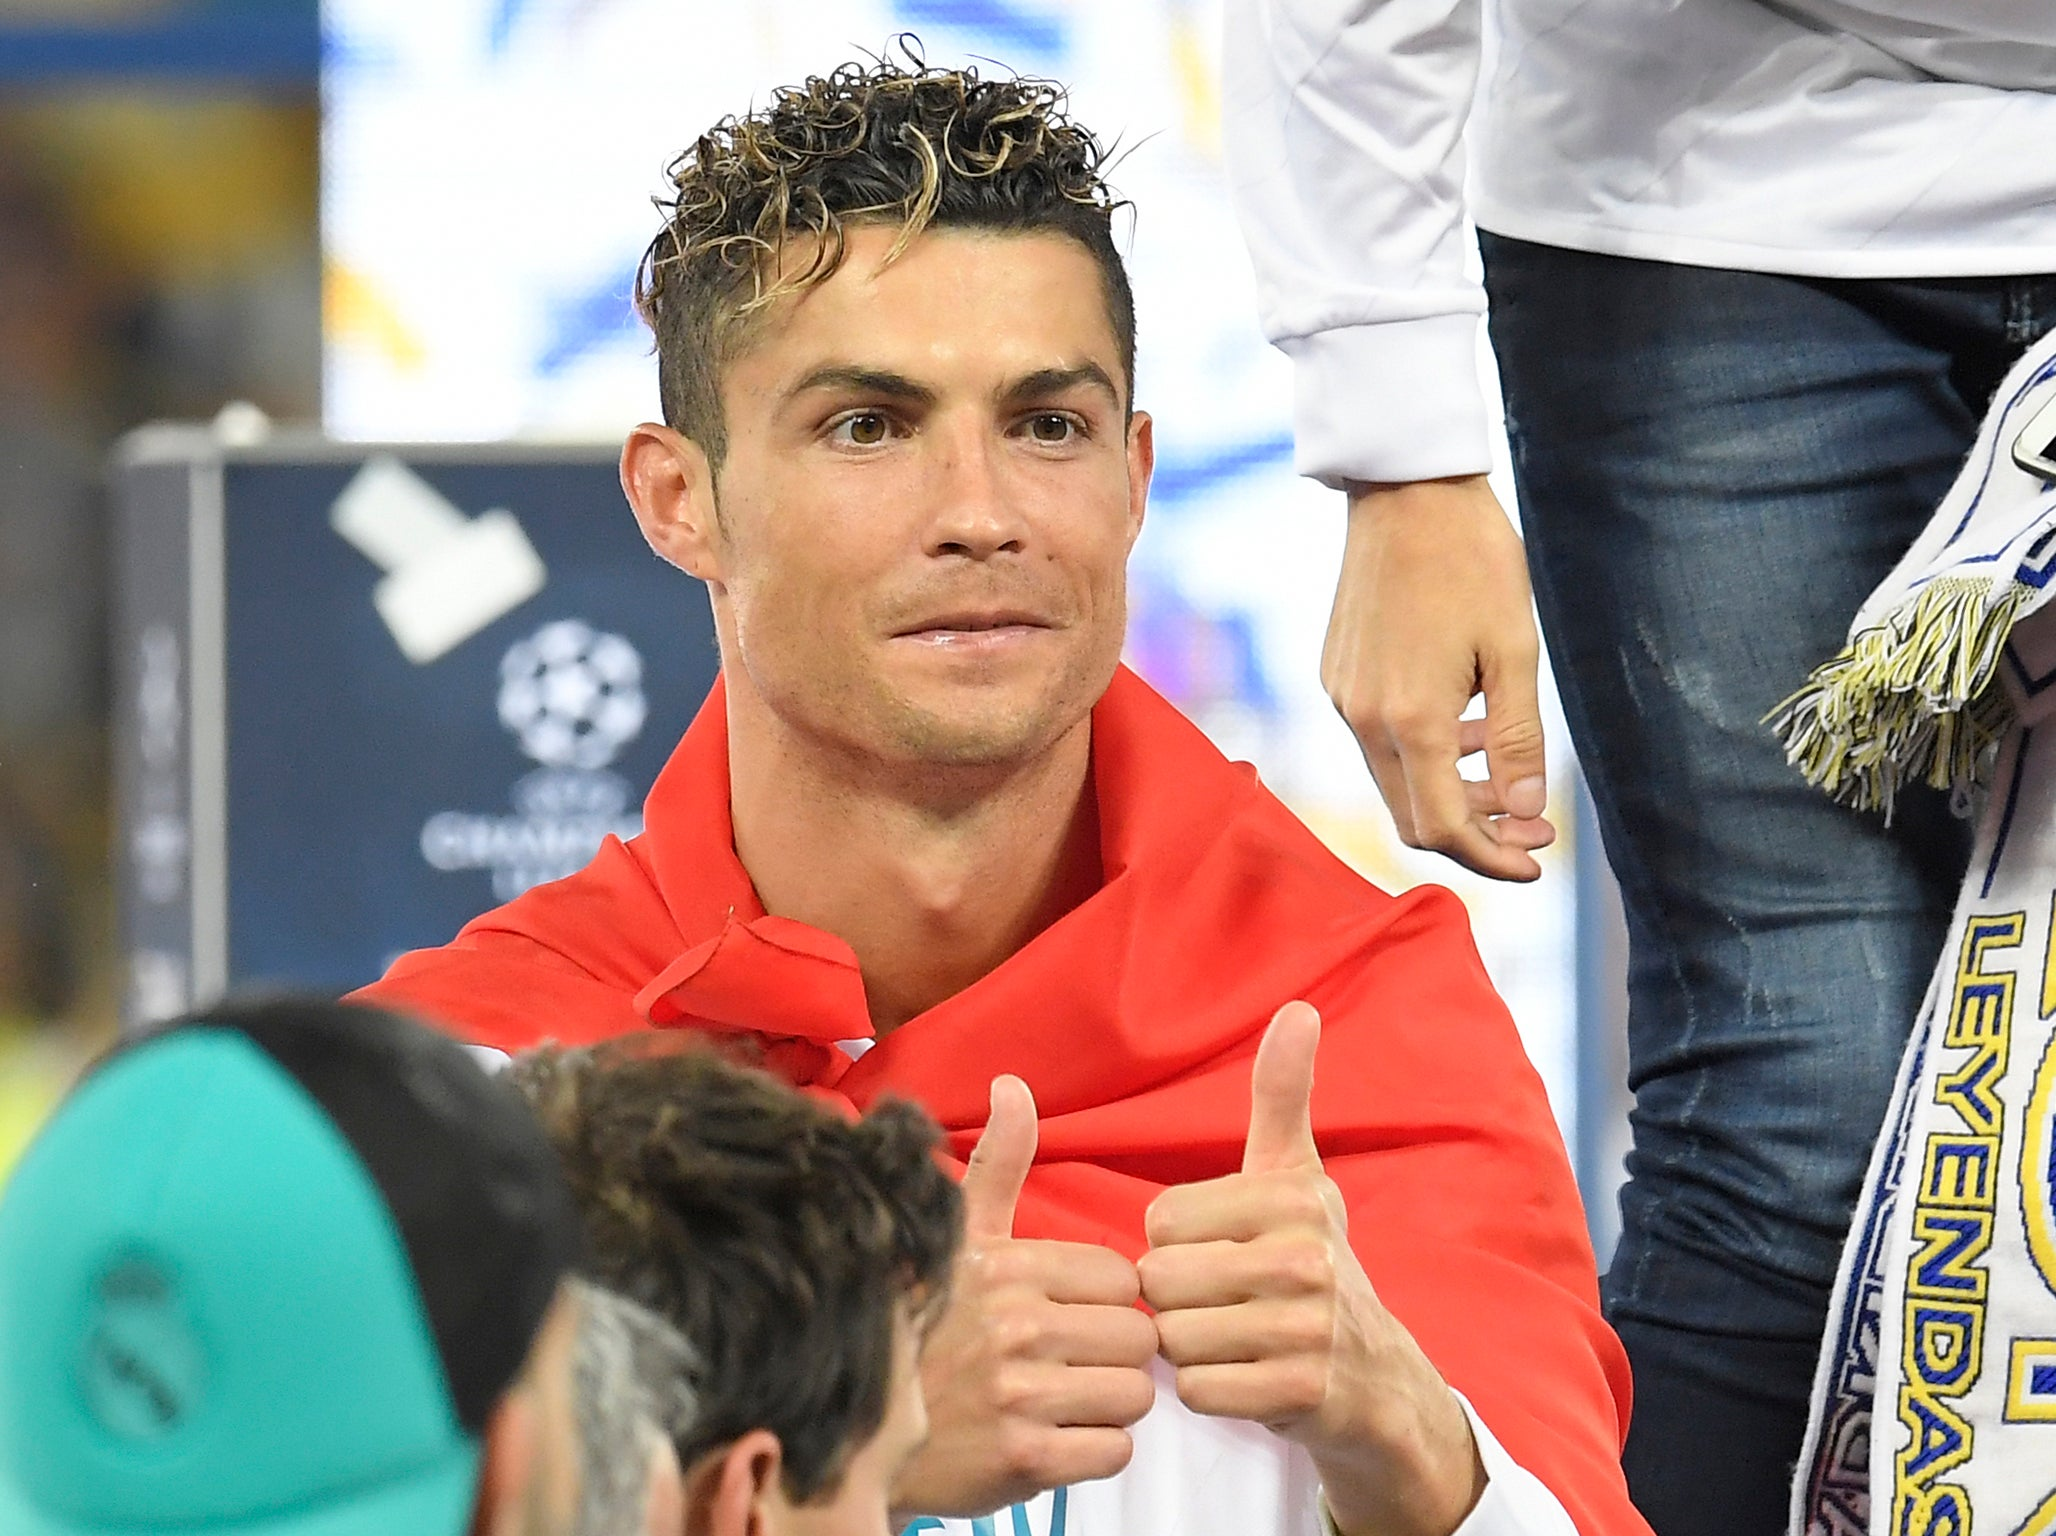 Cristiano Ronaldo Real Madrid Star Wants Champions League To Rename